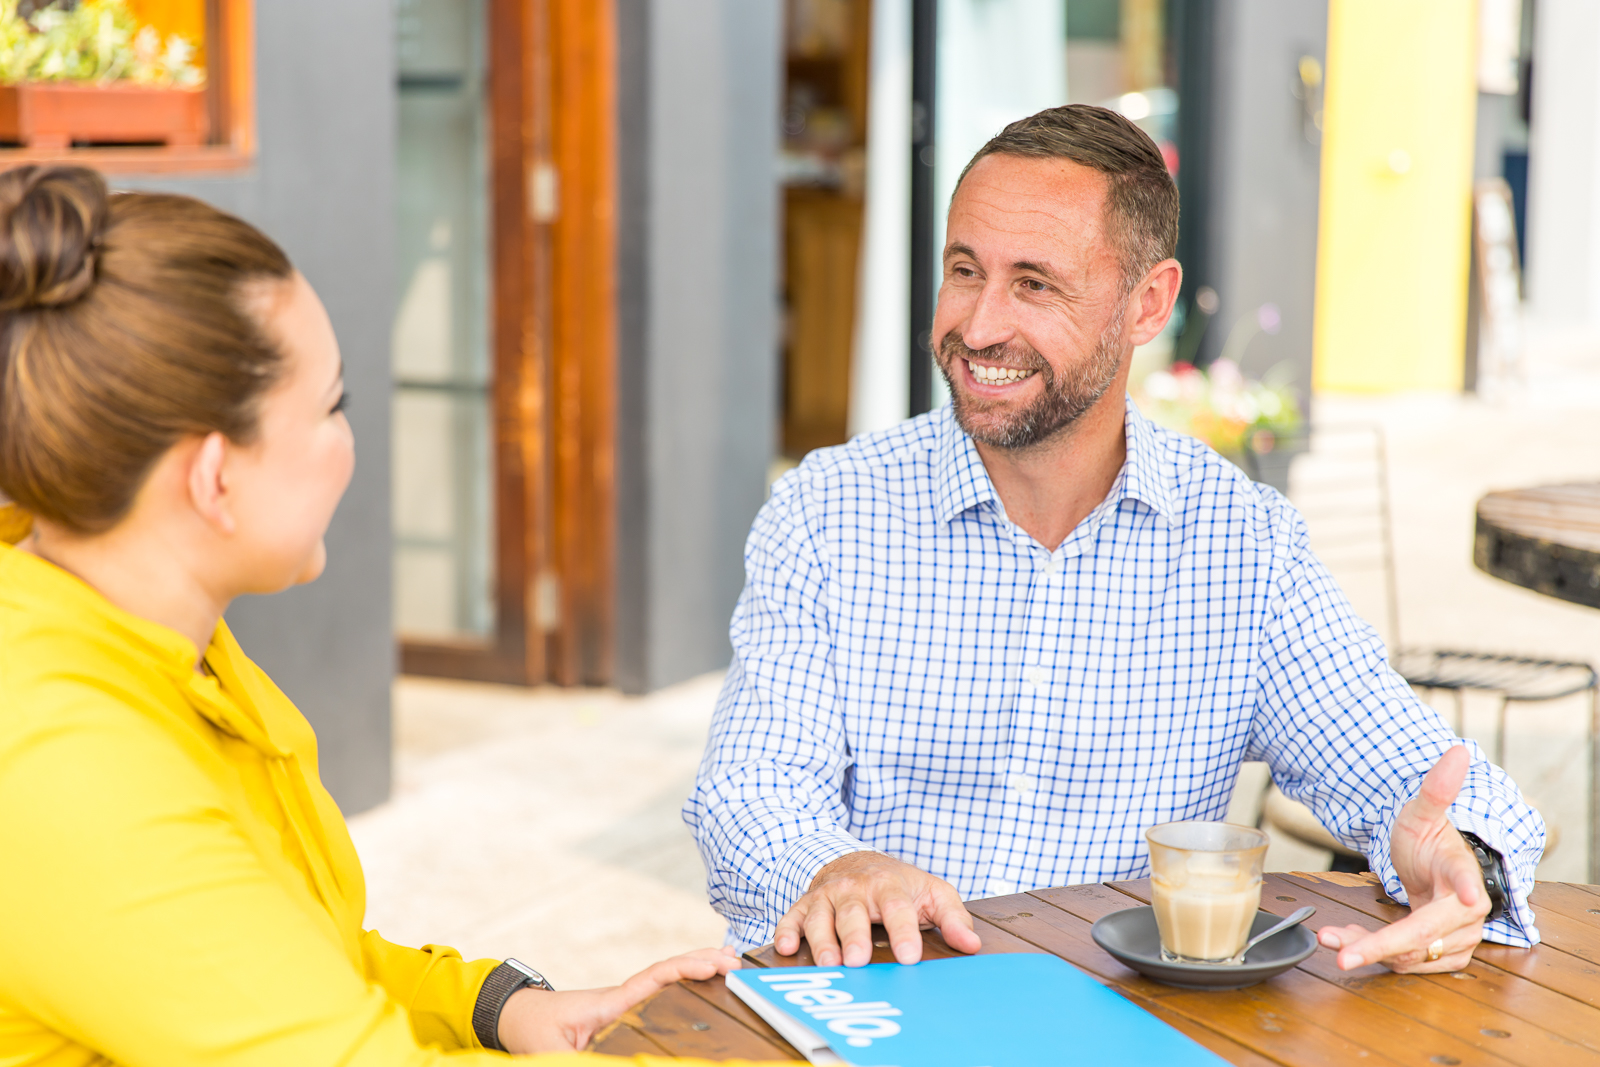 Personal Loans Newcastle concept - Heath talking with client